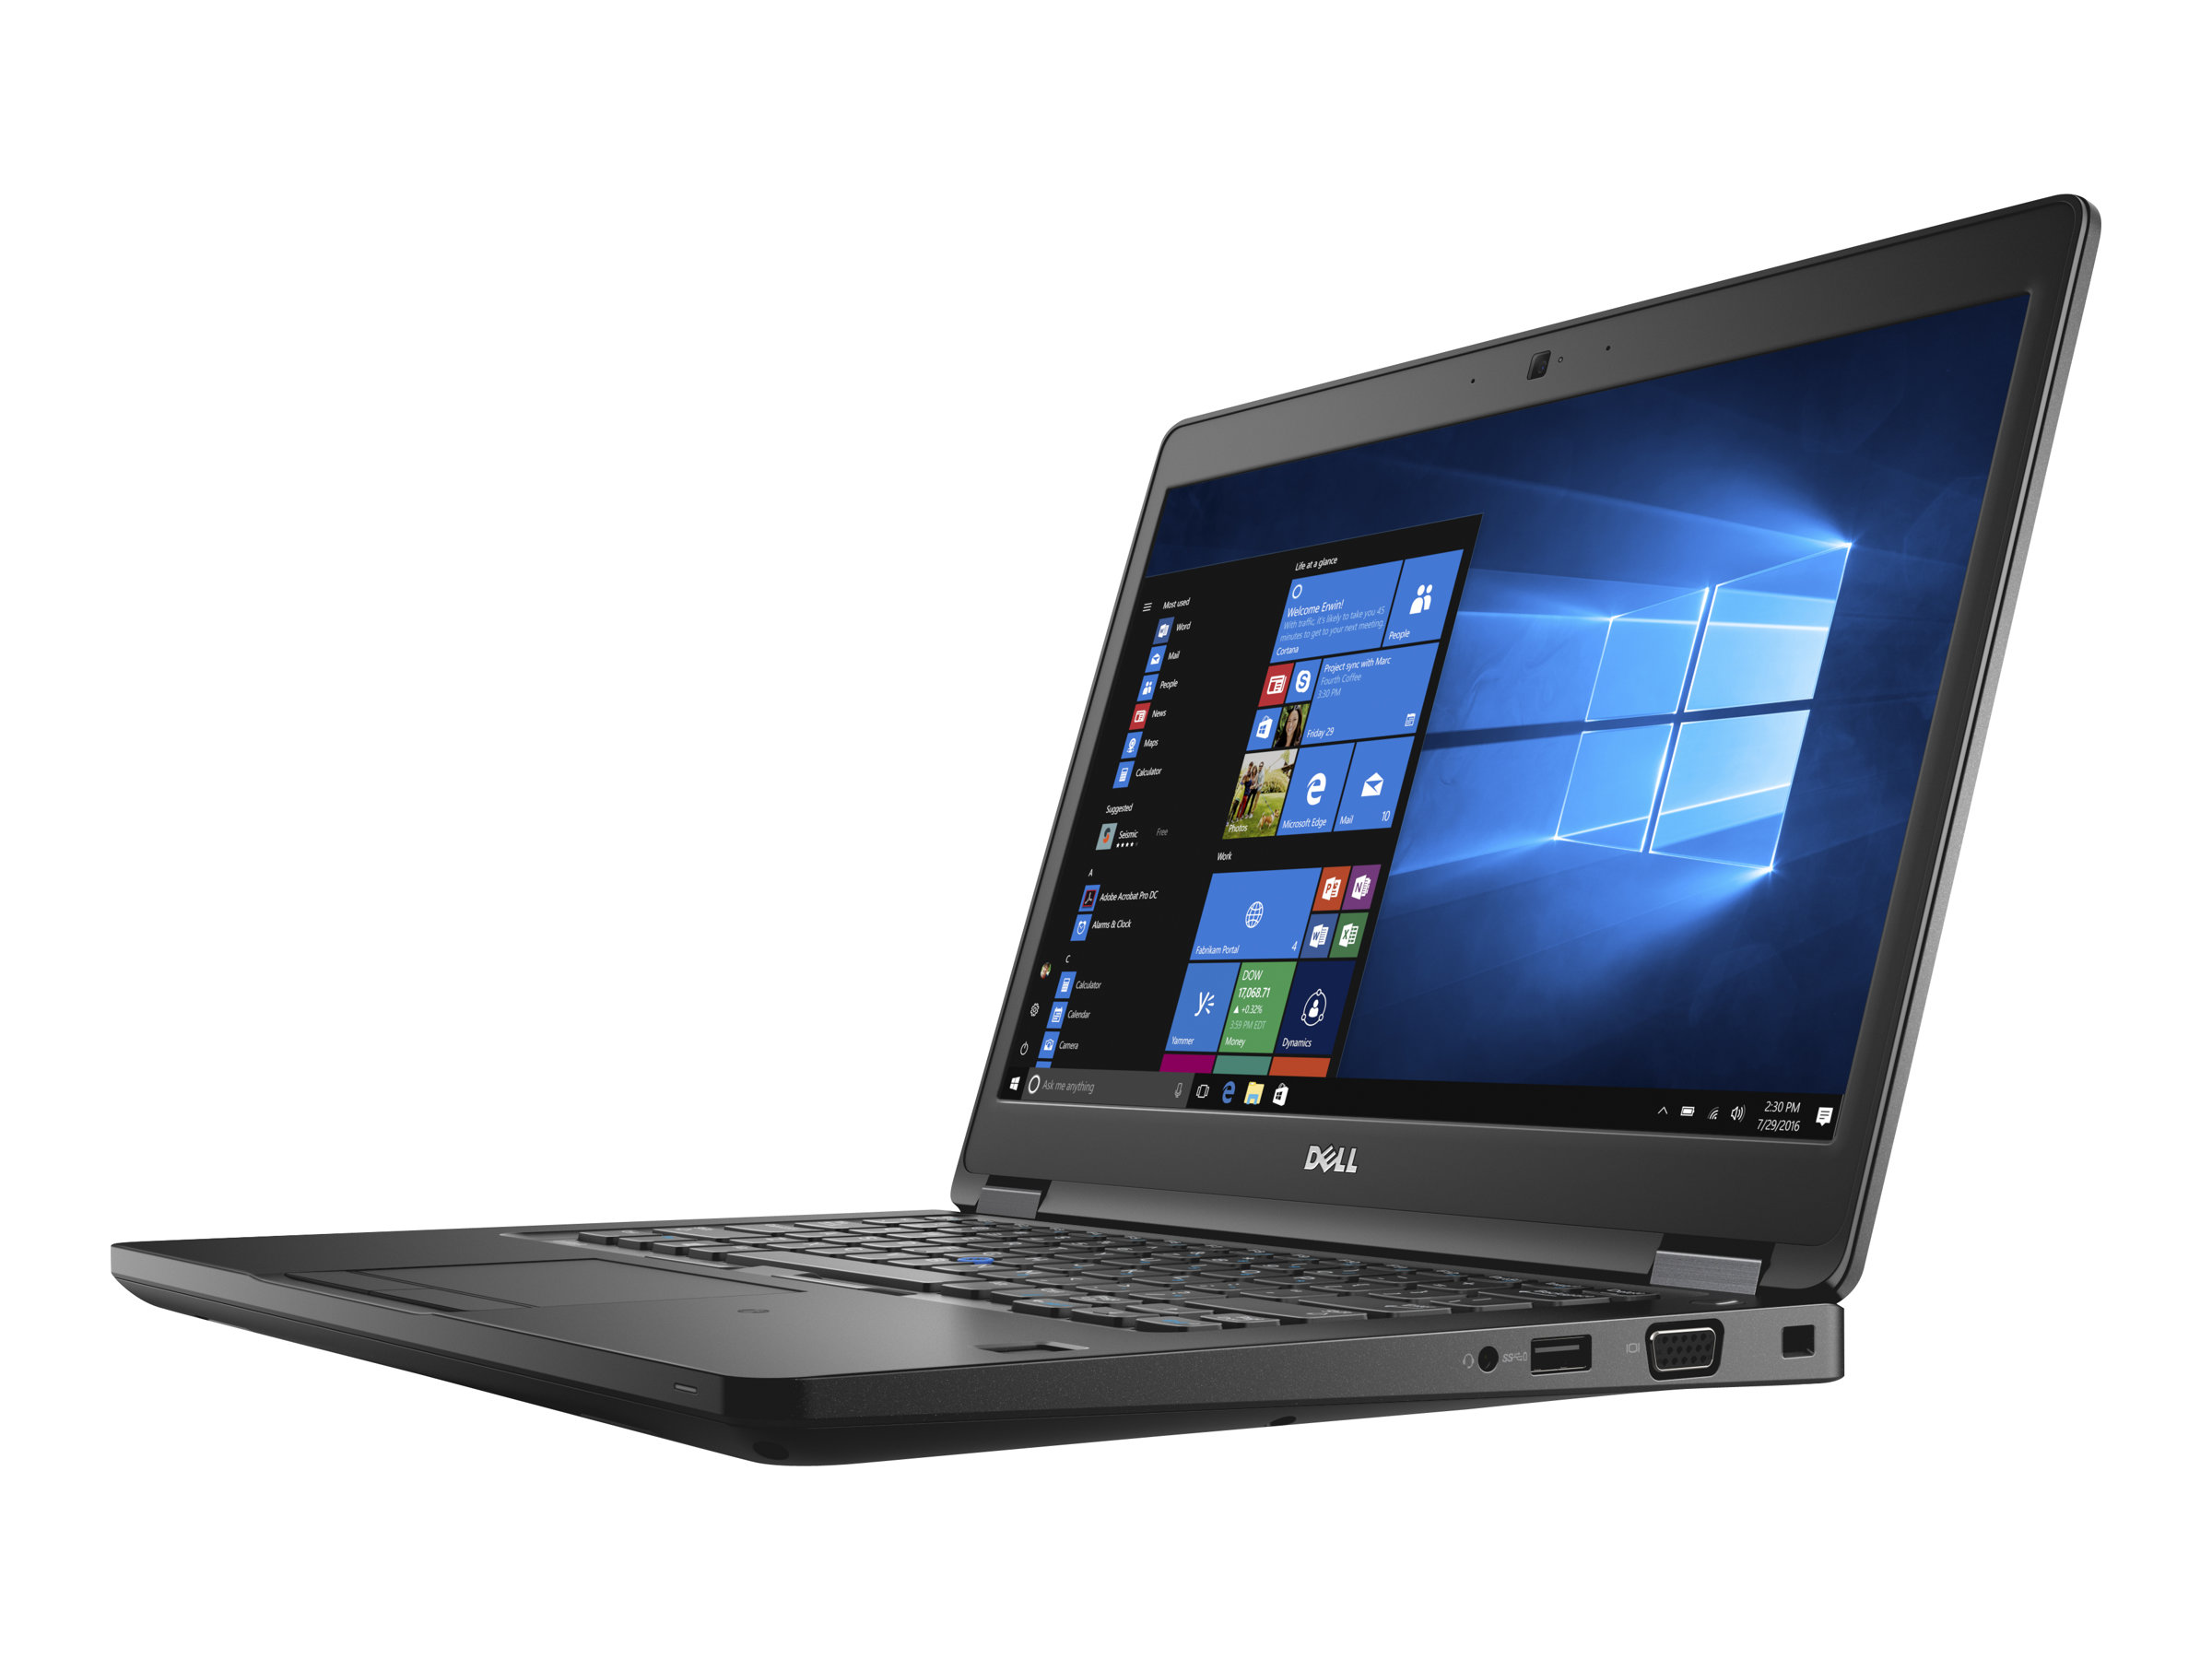 """Dell Latitude 5480 - 14"""" - Core i5 7440HQ - vPro - 8 GB RAM - 256 GB SSD - with 3-year ProSupport"""